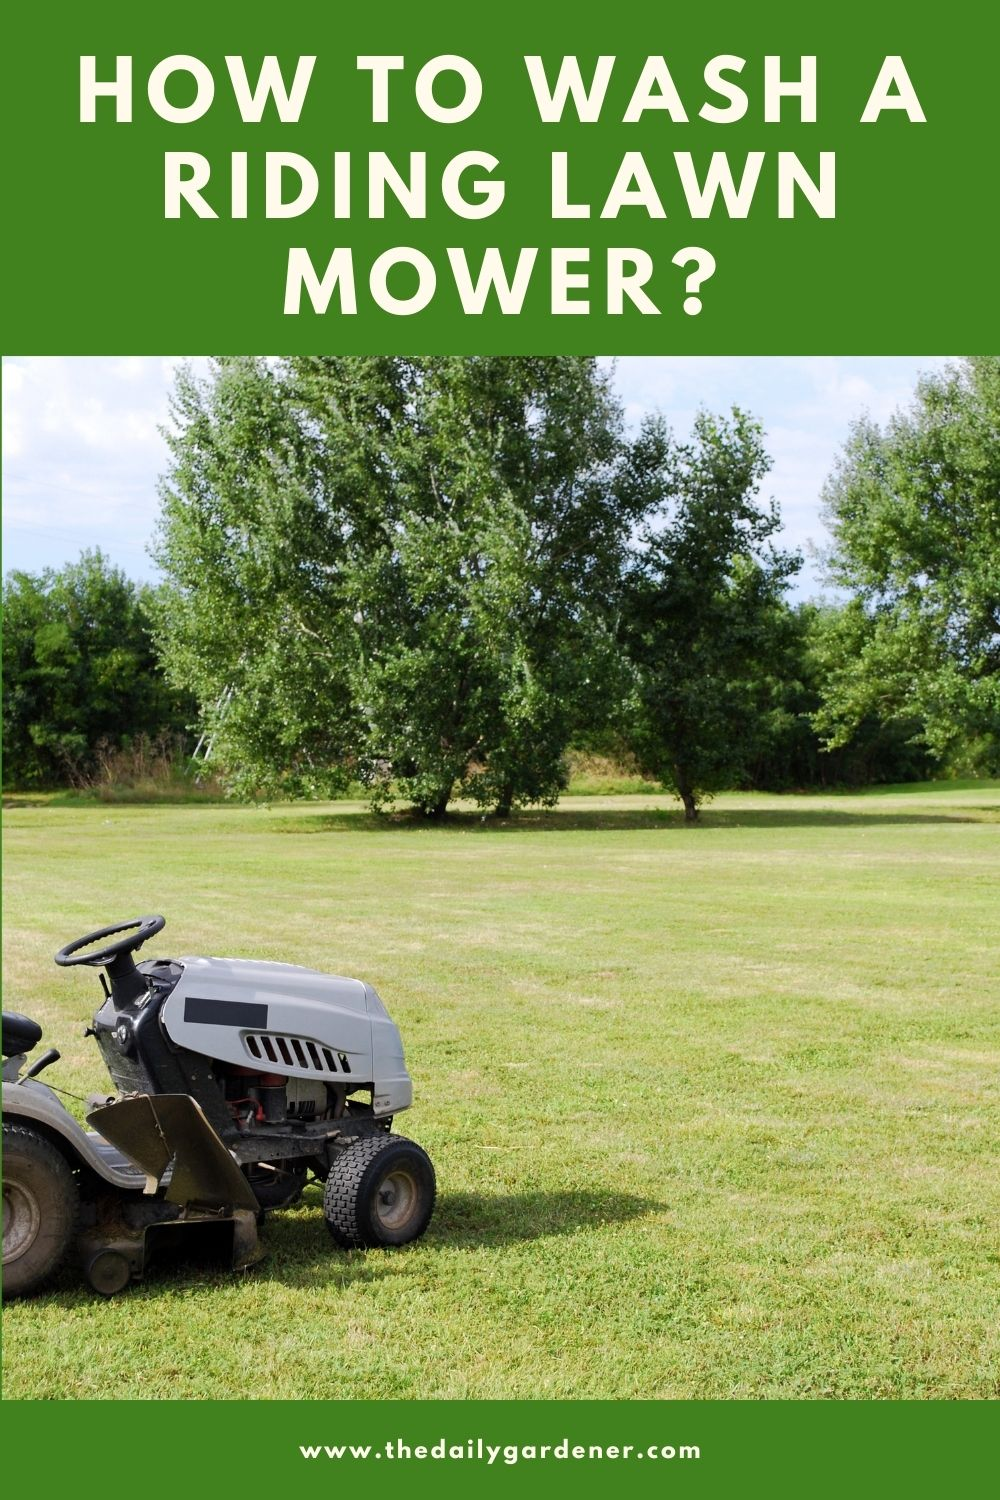 How to Wash a Riding Lawn Mower 2